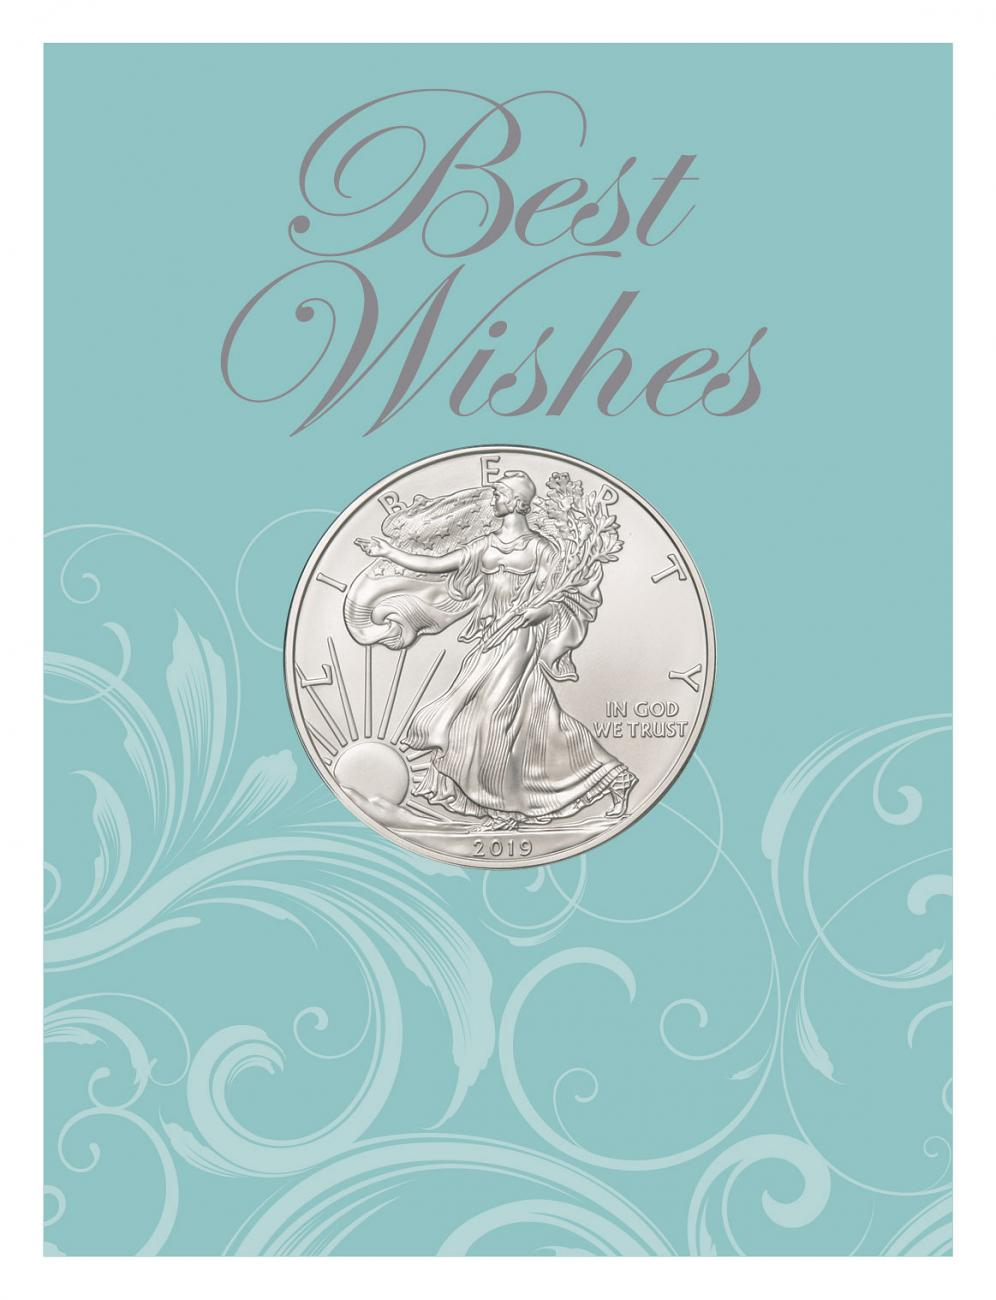 2019 American Silver Eagle BU Wedding Best Wishes Coin Card